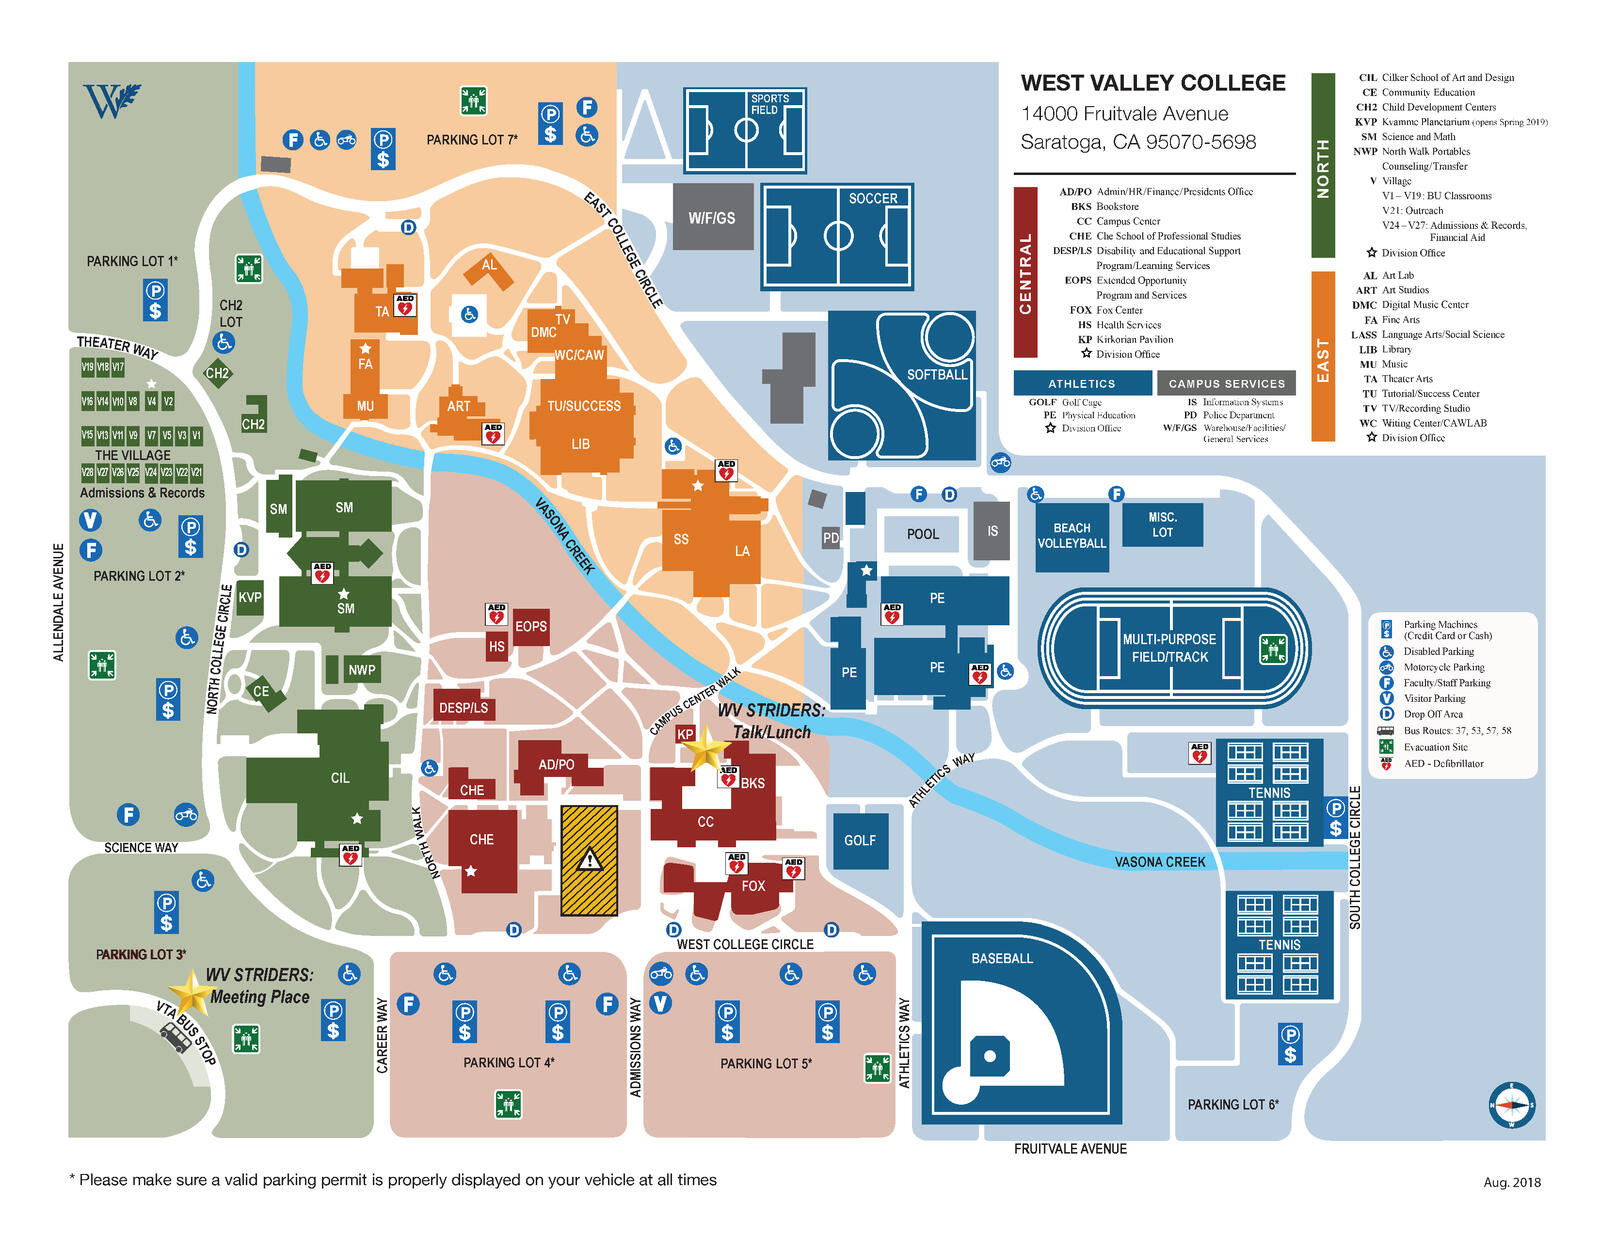 west valley campus map West Valley Striders Kickoff April 27 City Of Saratoga Mdash west valley campus map